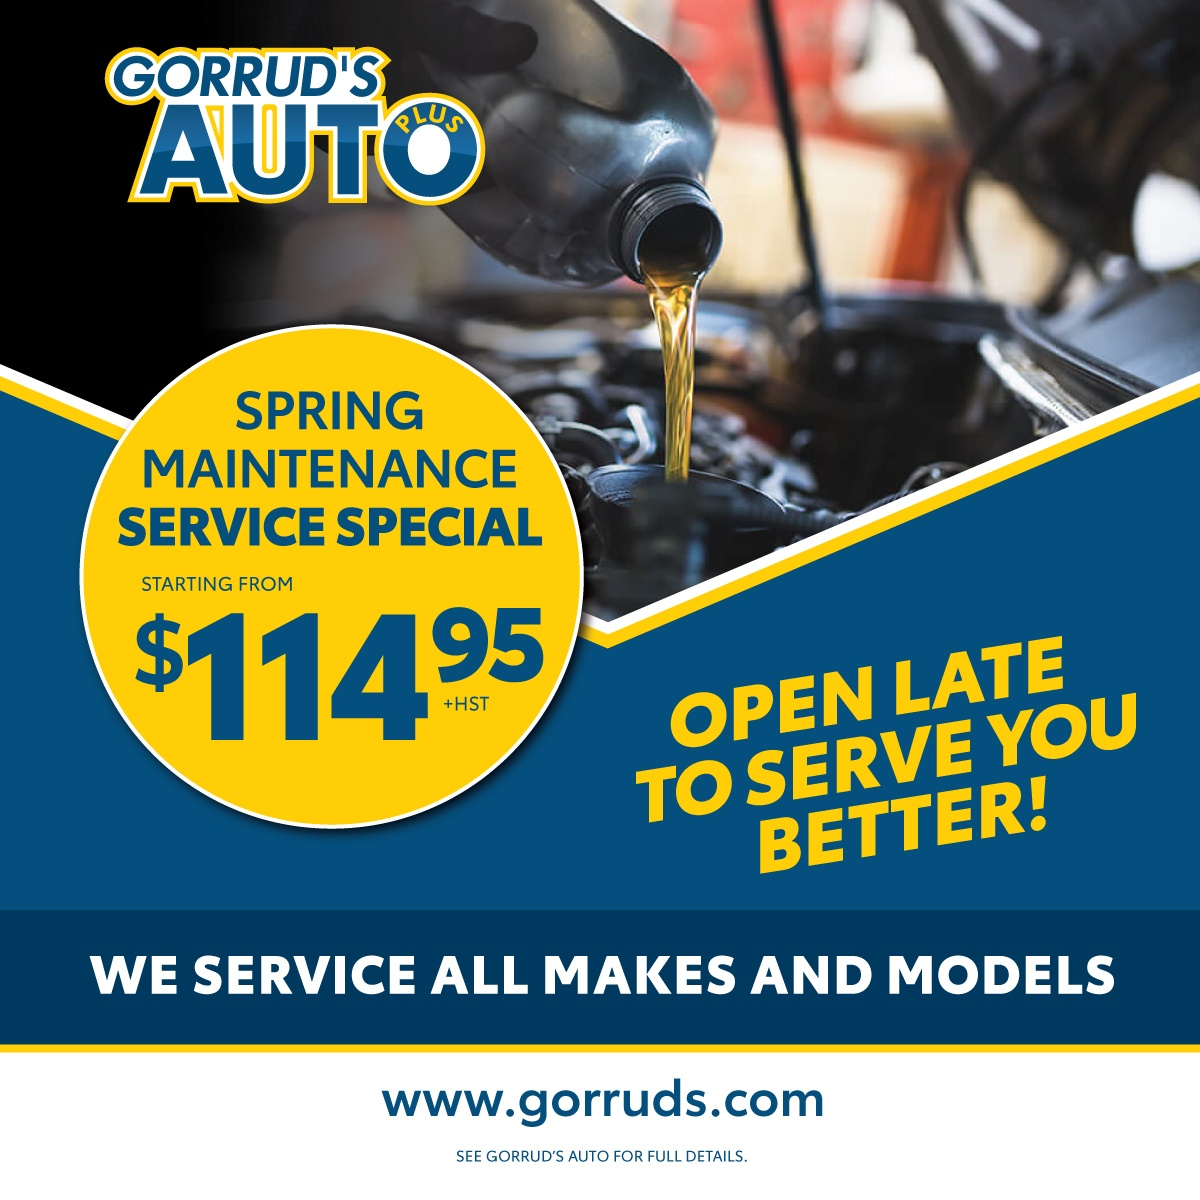 Spring Maintenance Service Special